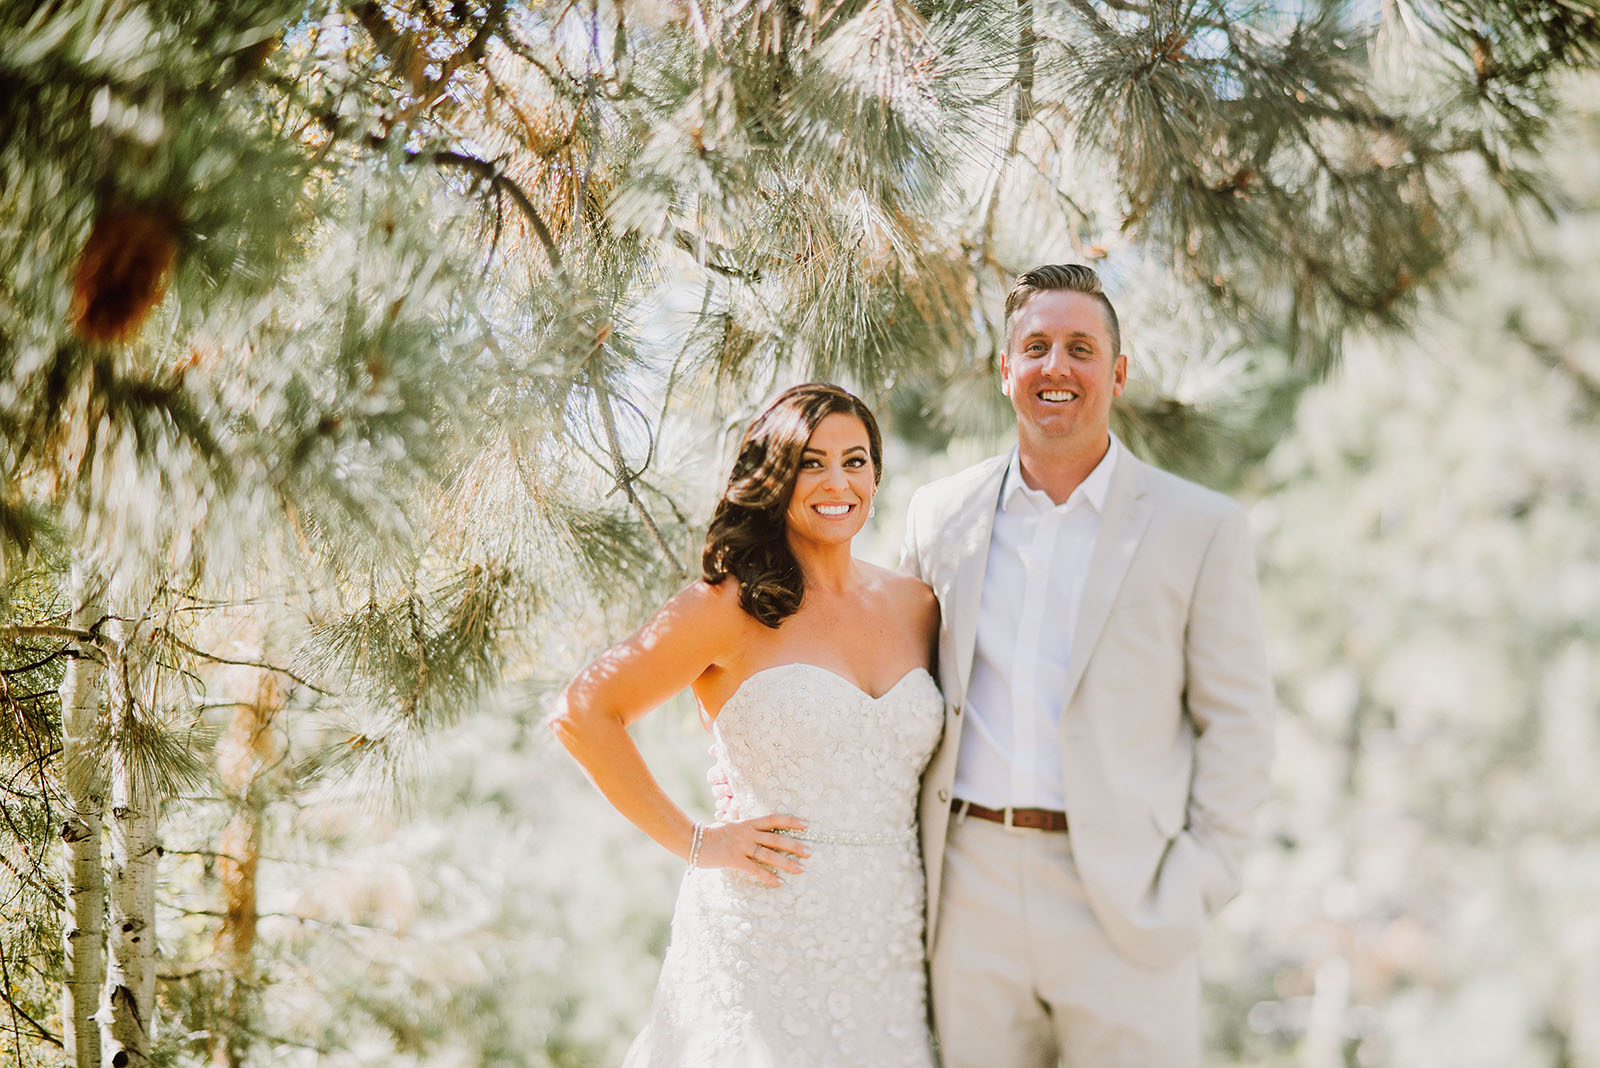 Bride and Groom smiling in the pine trees at their Incline Village wedding